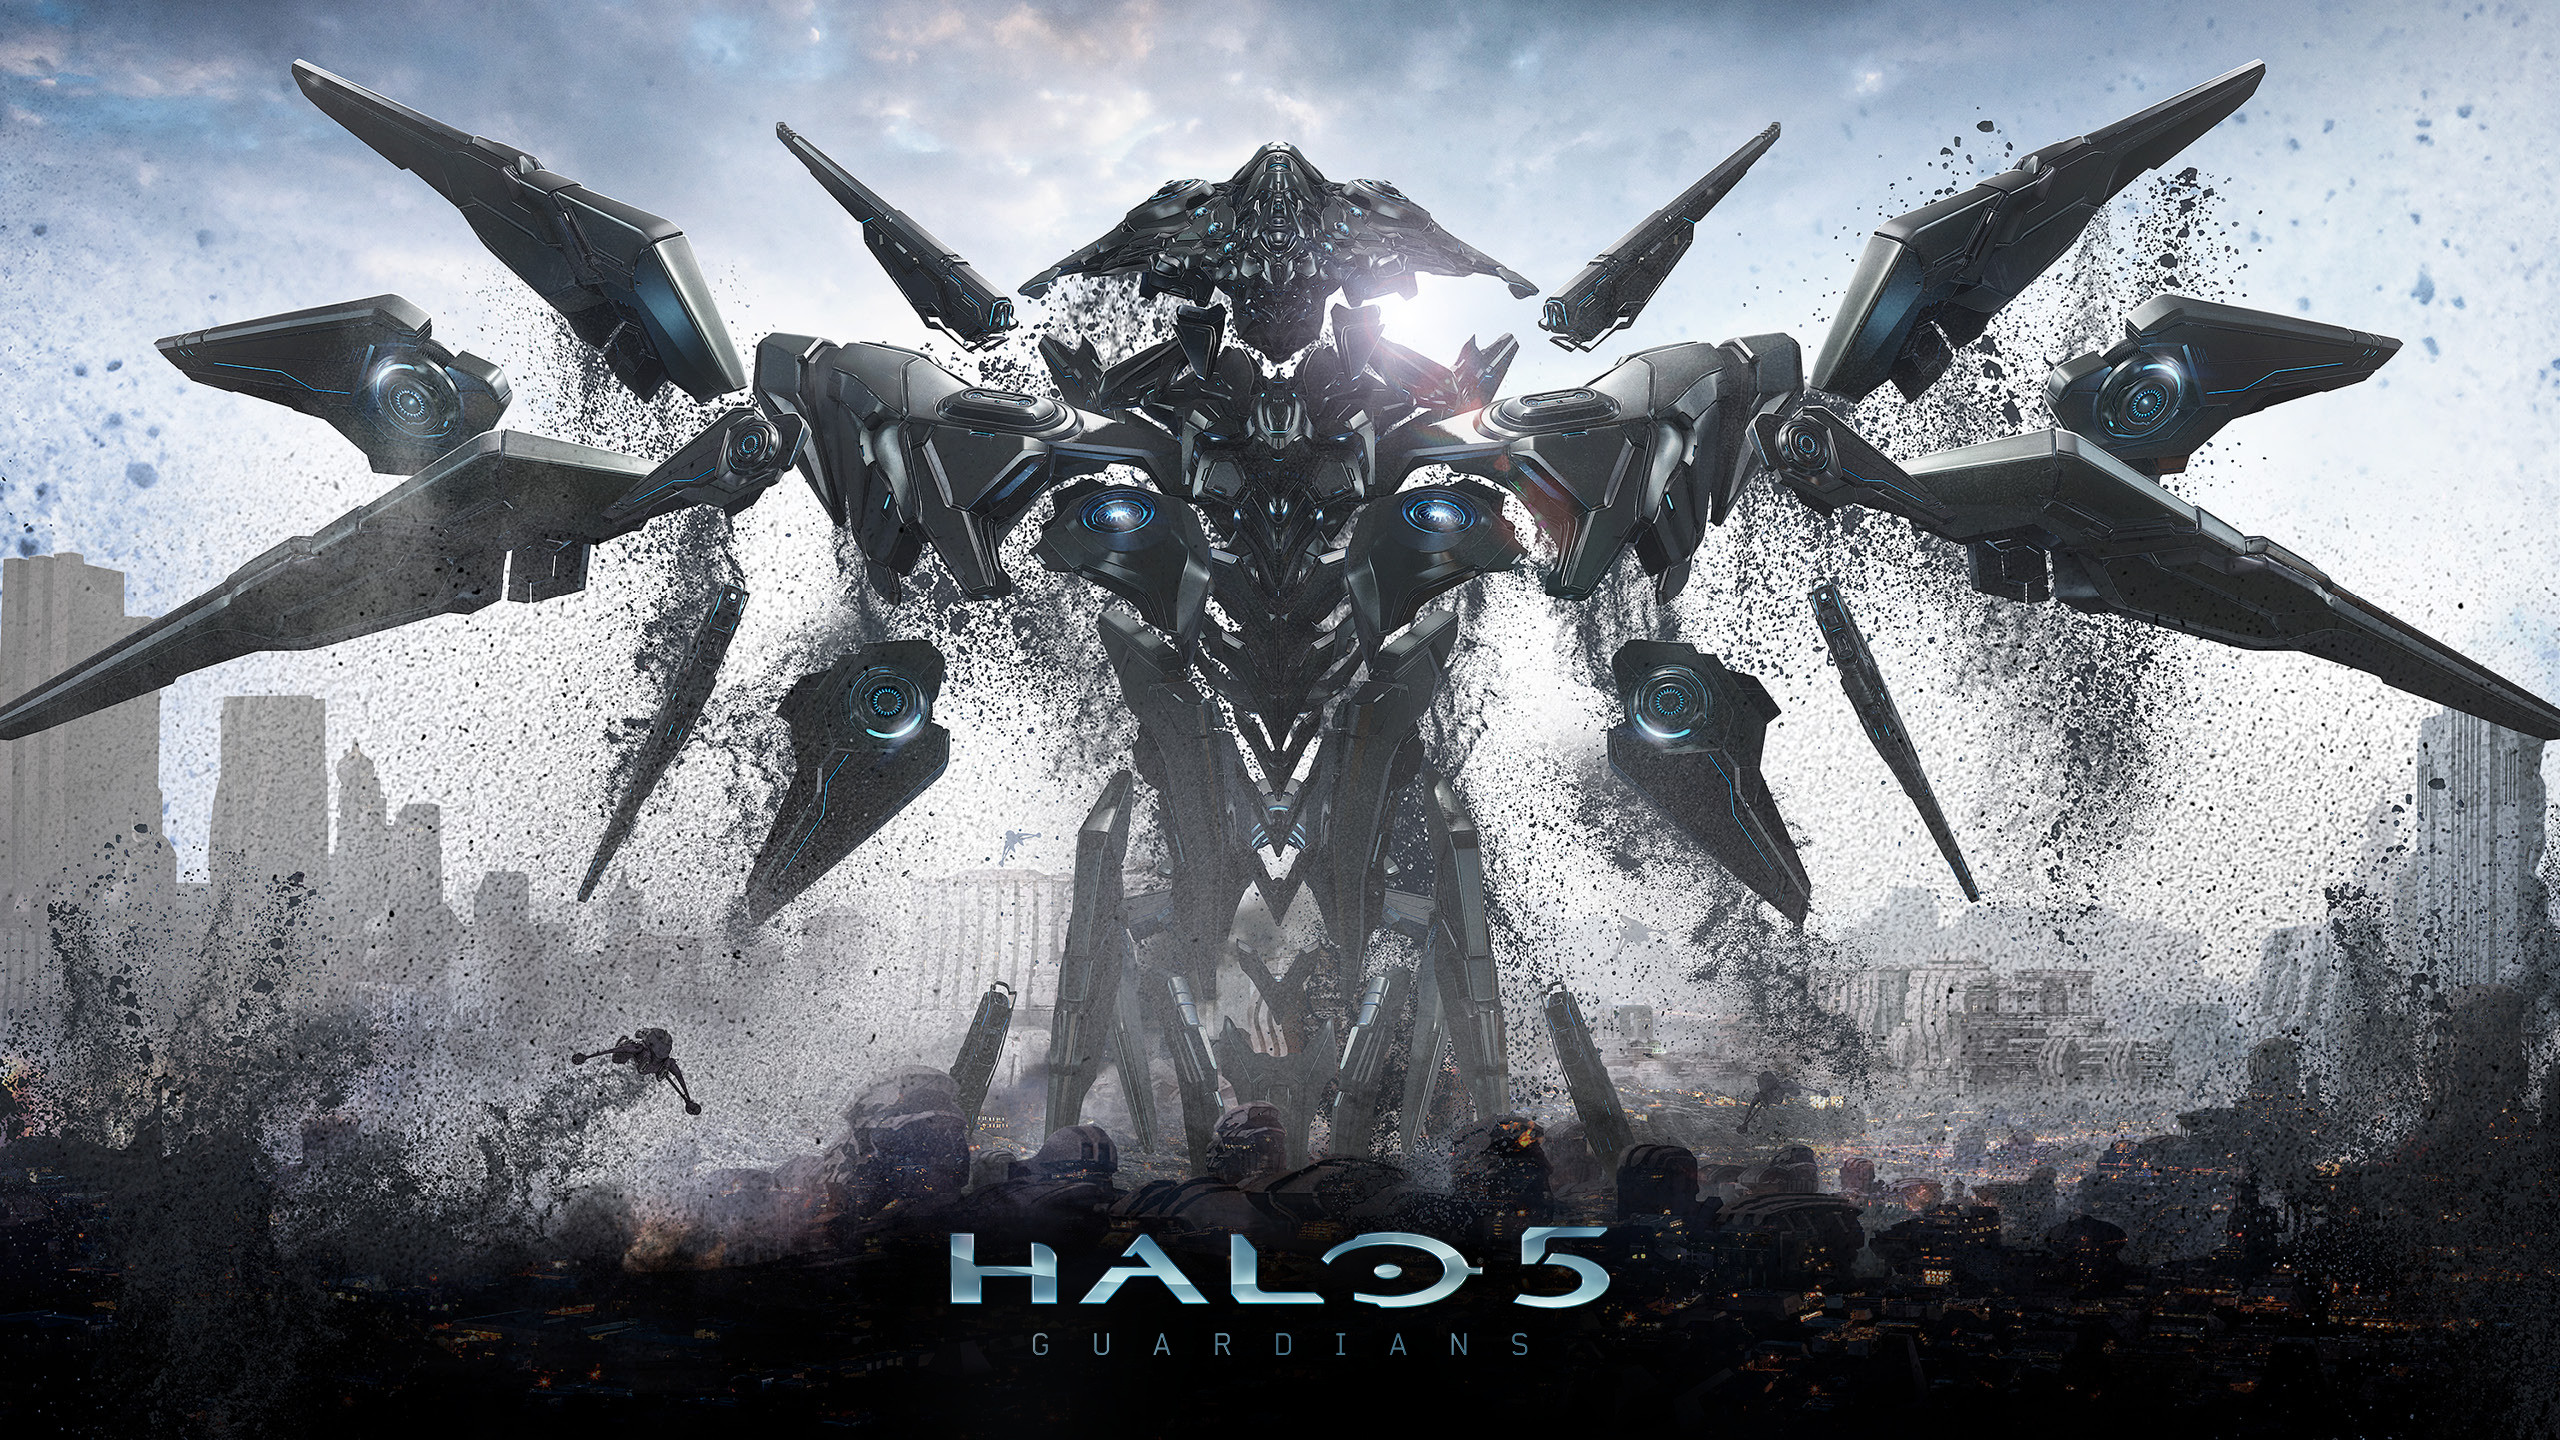 Halo 5: Guardians Backgrounds, Pictures, Images